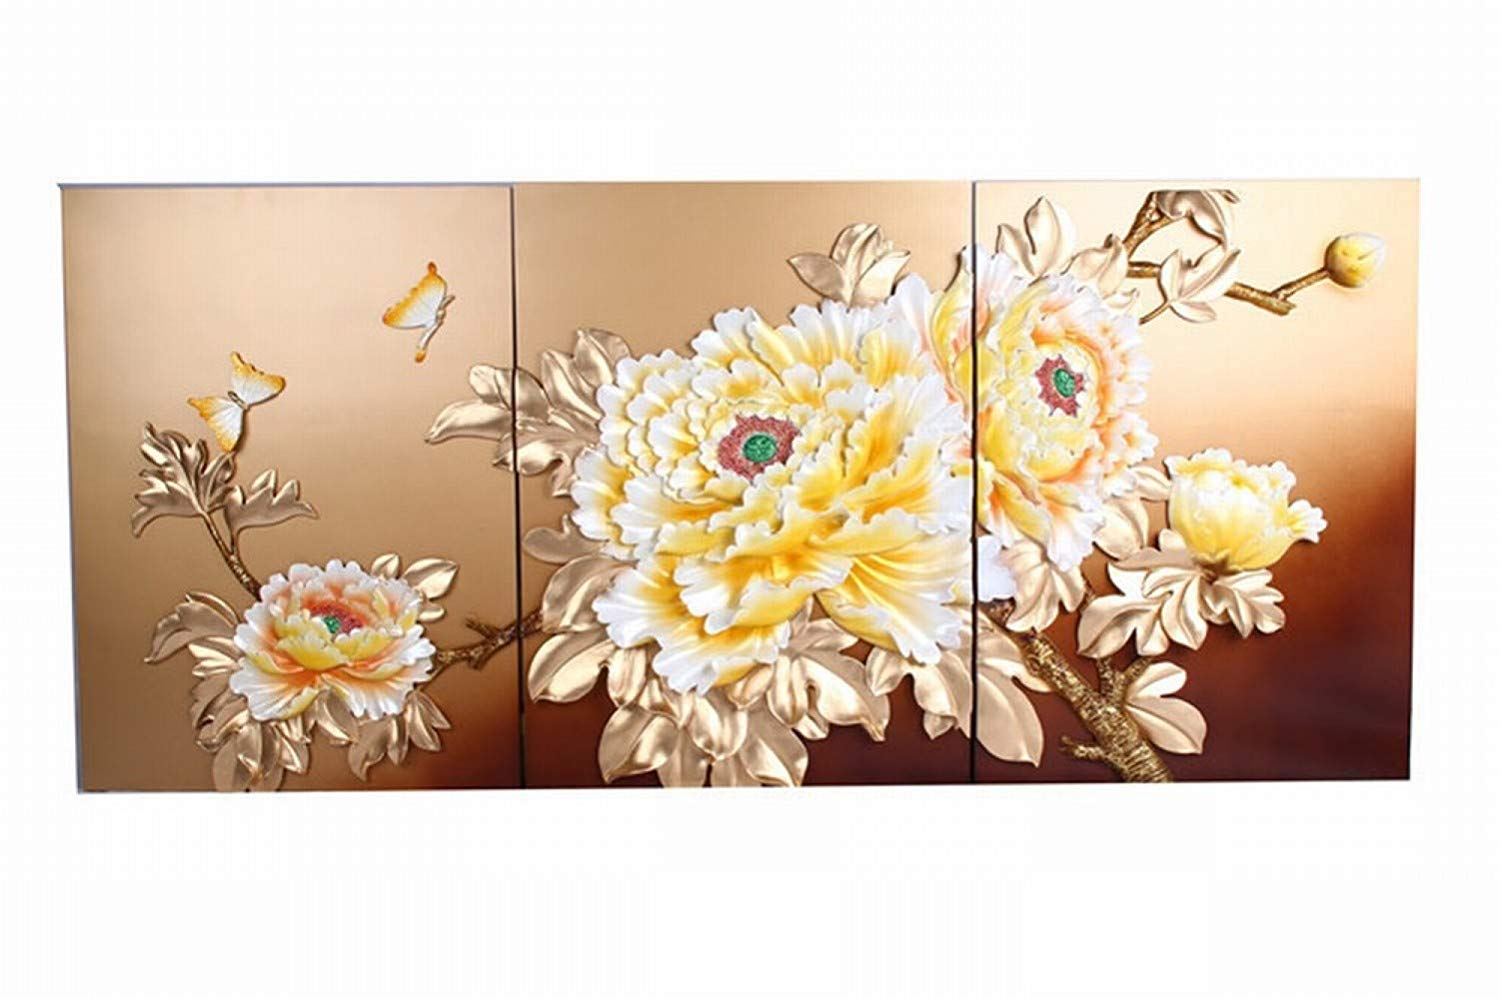 XQY Triple Relief Embossed Painting, Embossed Wall Decoration - Modern Living Room Hotel Decorative Painting, Three-Dimensional Relief Painting, Craft Painting,As Show,6080CM